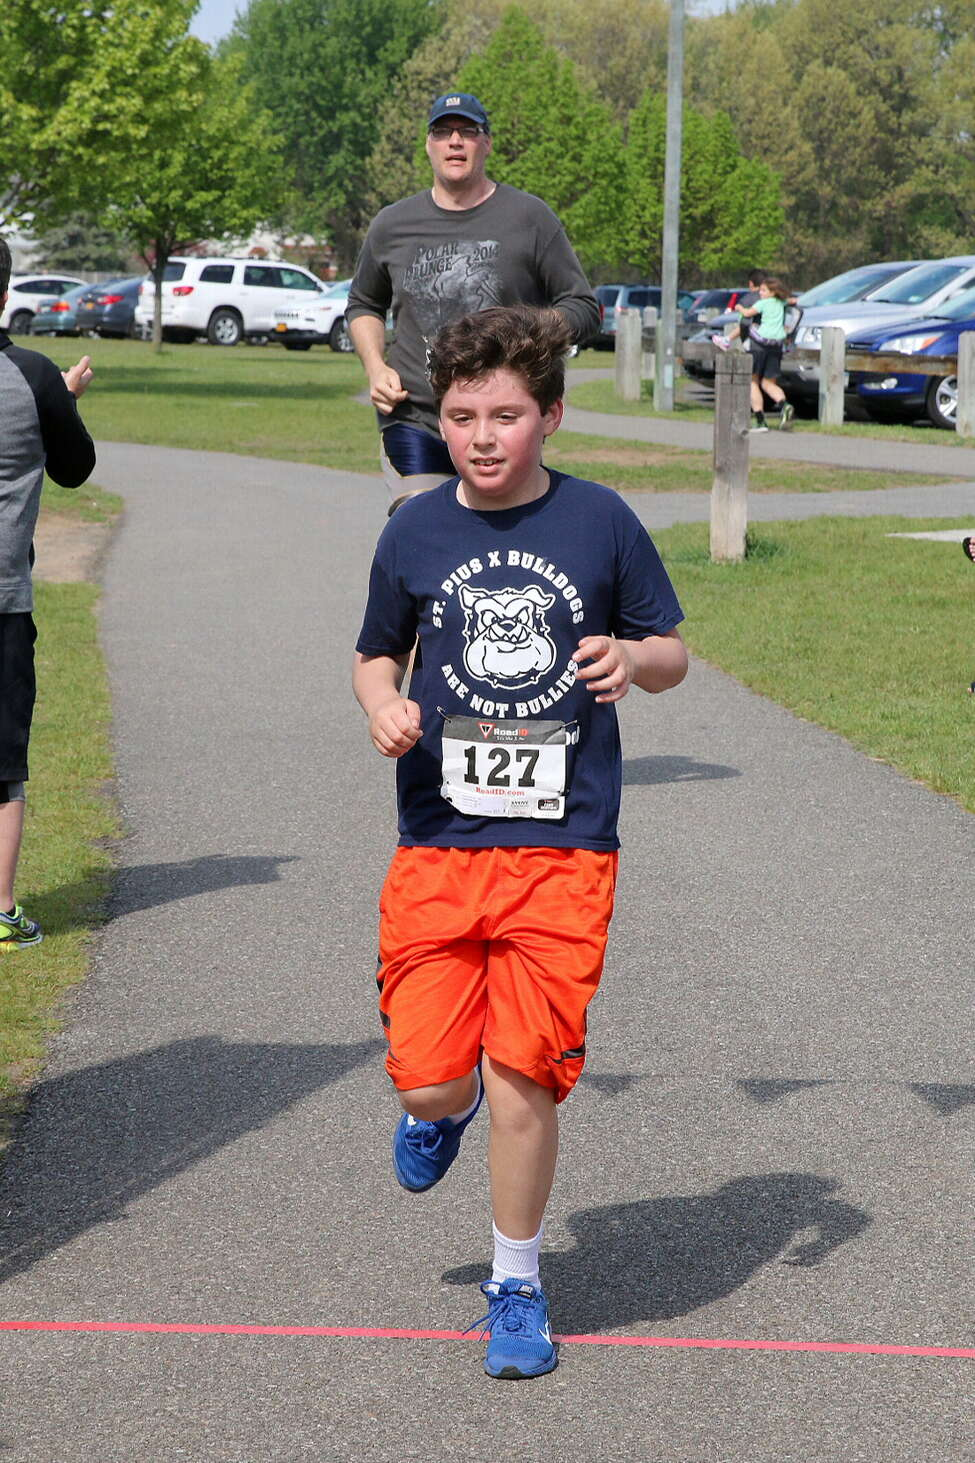 Were you Seen at the Diocesan Dash 5K Run/Walk and Dash for Hope Kids Race held at The Crossings in the Town of Colonie Park on Saturday, May 14, 2016?